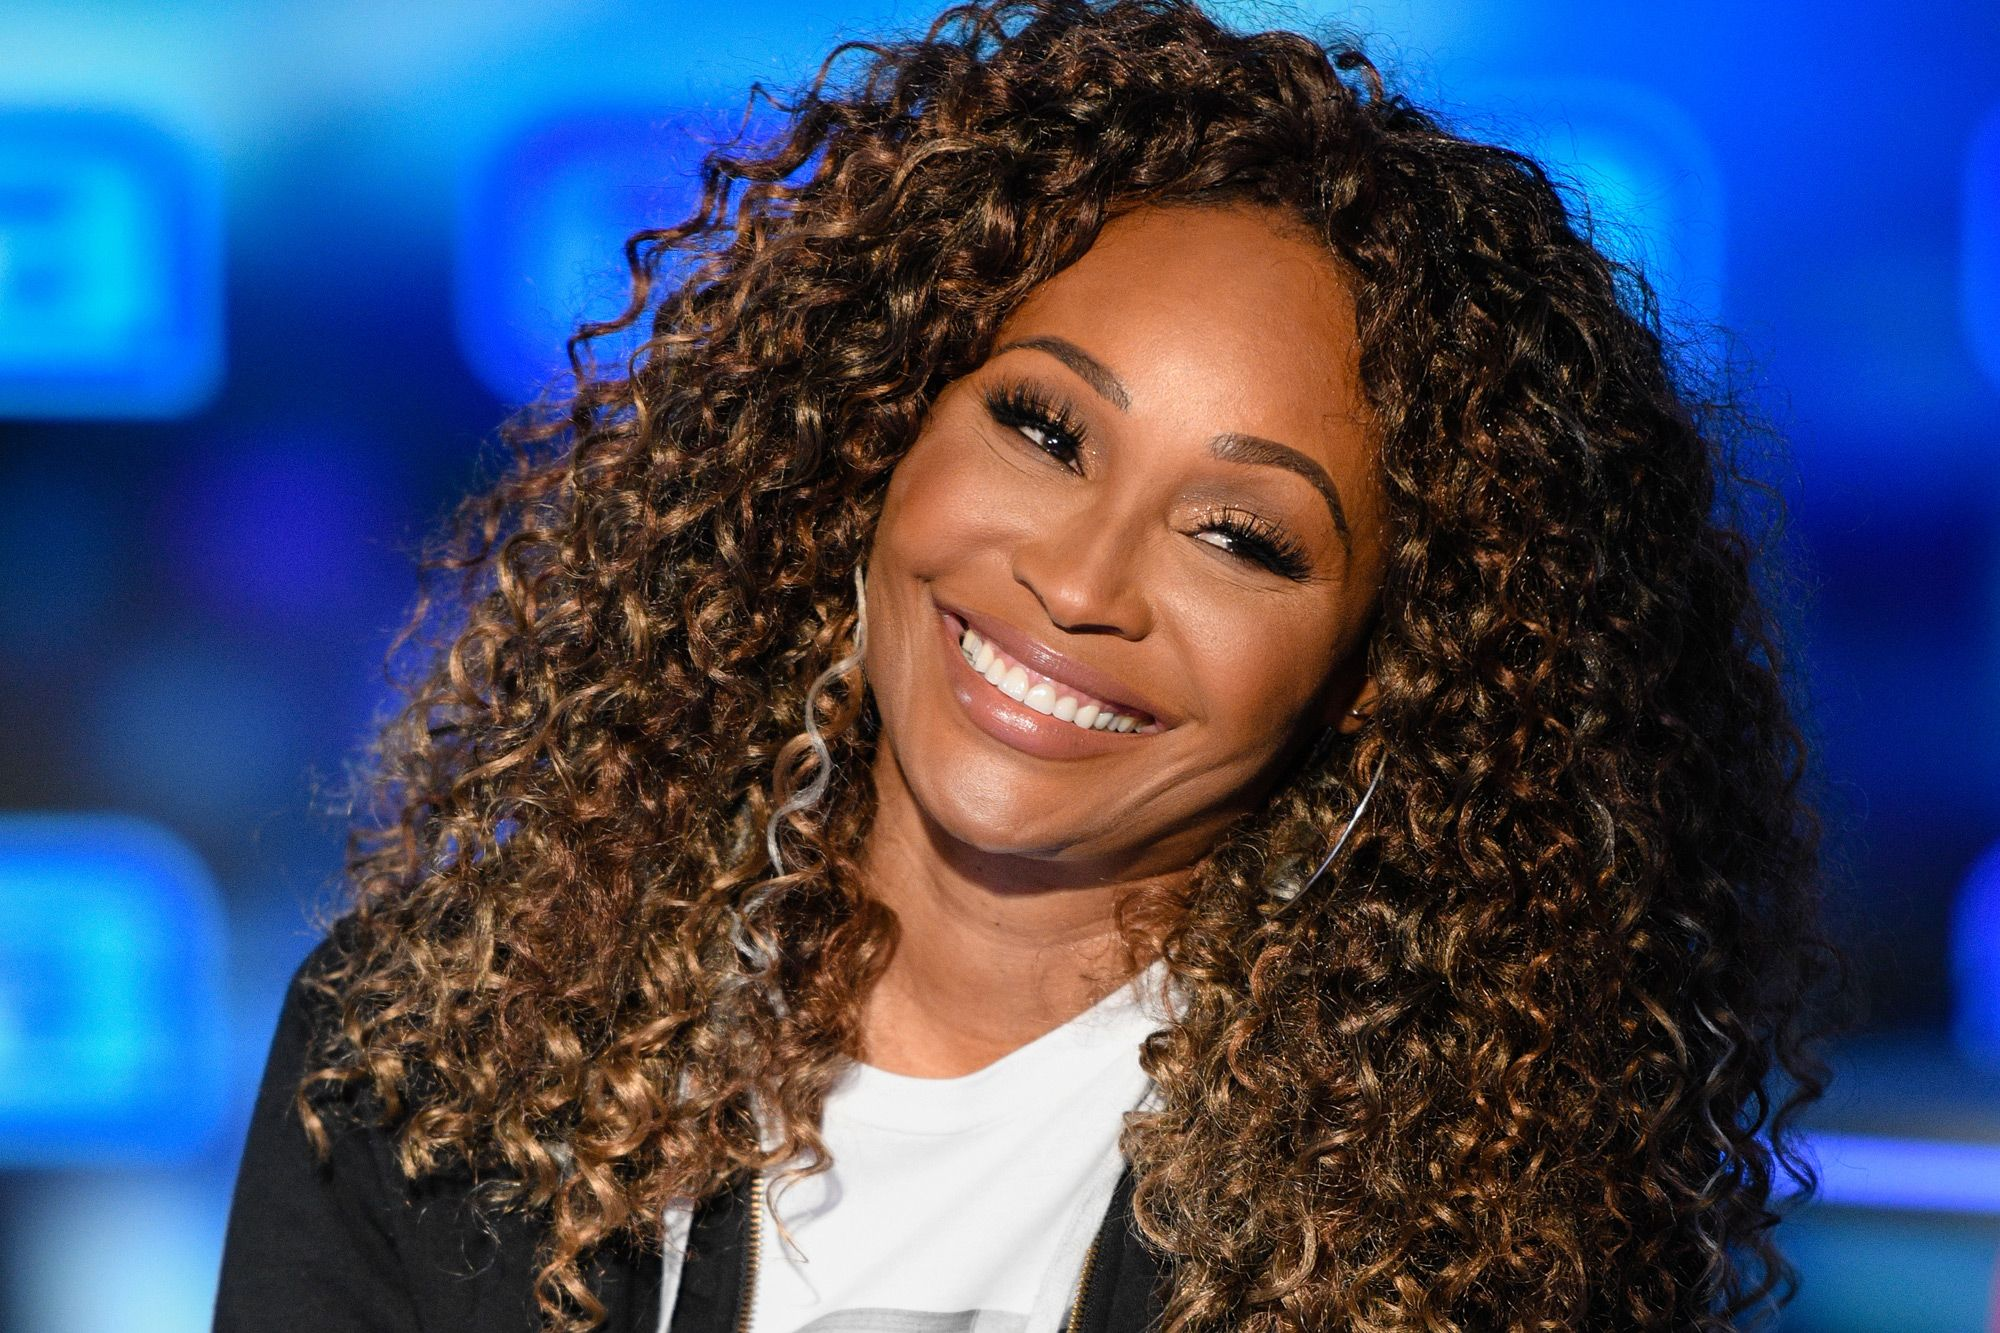 Cynthia Bailey Shares This Look For 'National Bang Day' – Check Out Her Photo Here